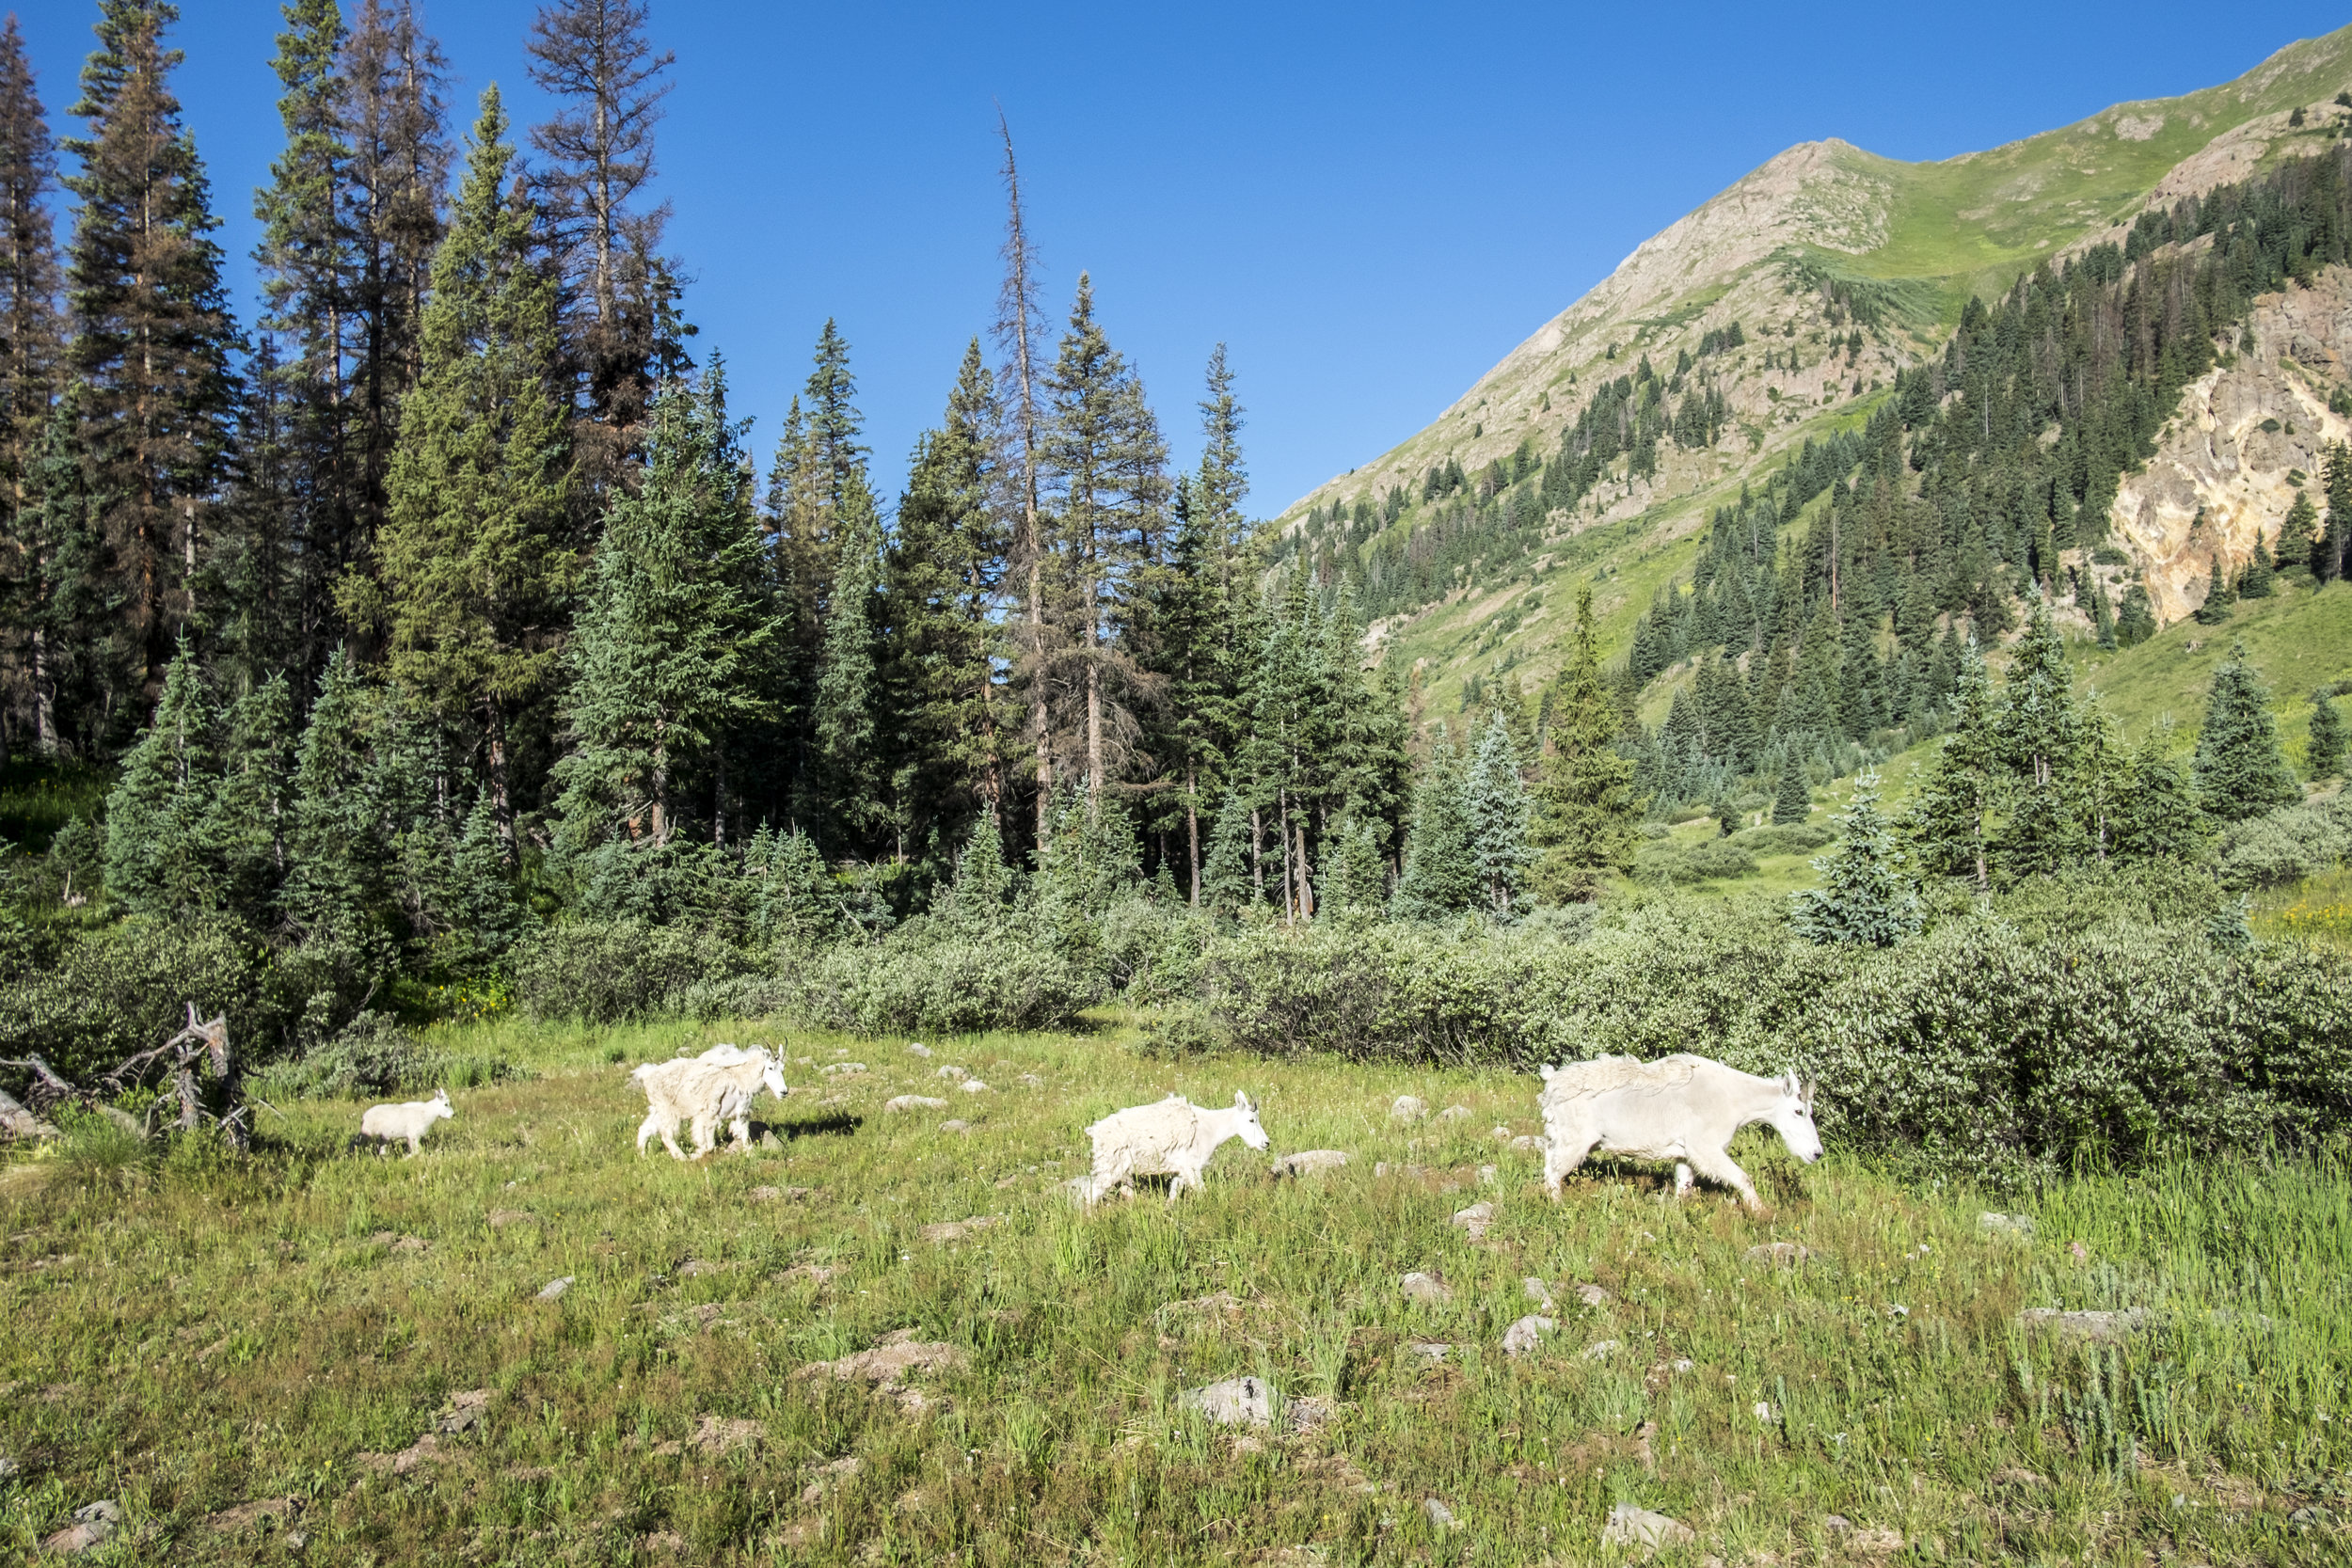 The mountain goats are tenacious. They'll walk right up to you in hopes of getting some salty sweat from your clothing.